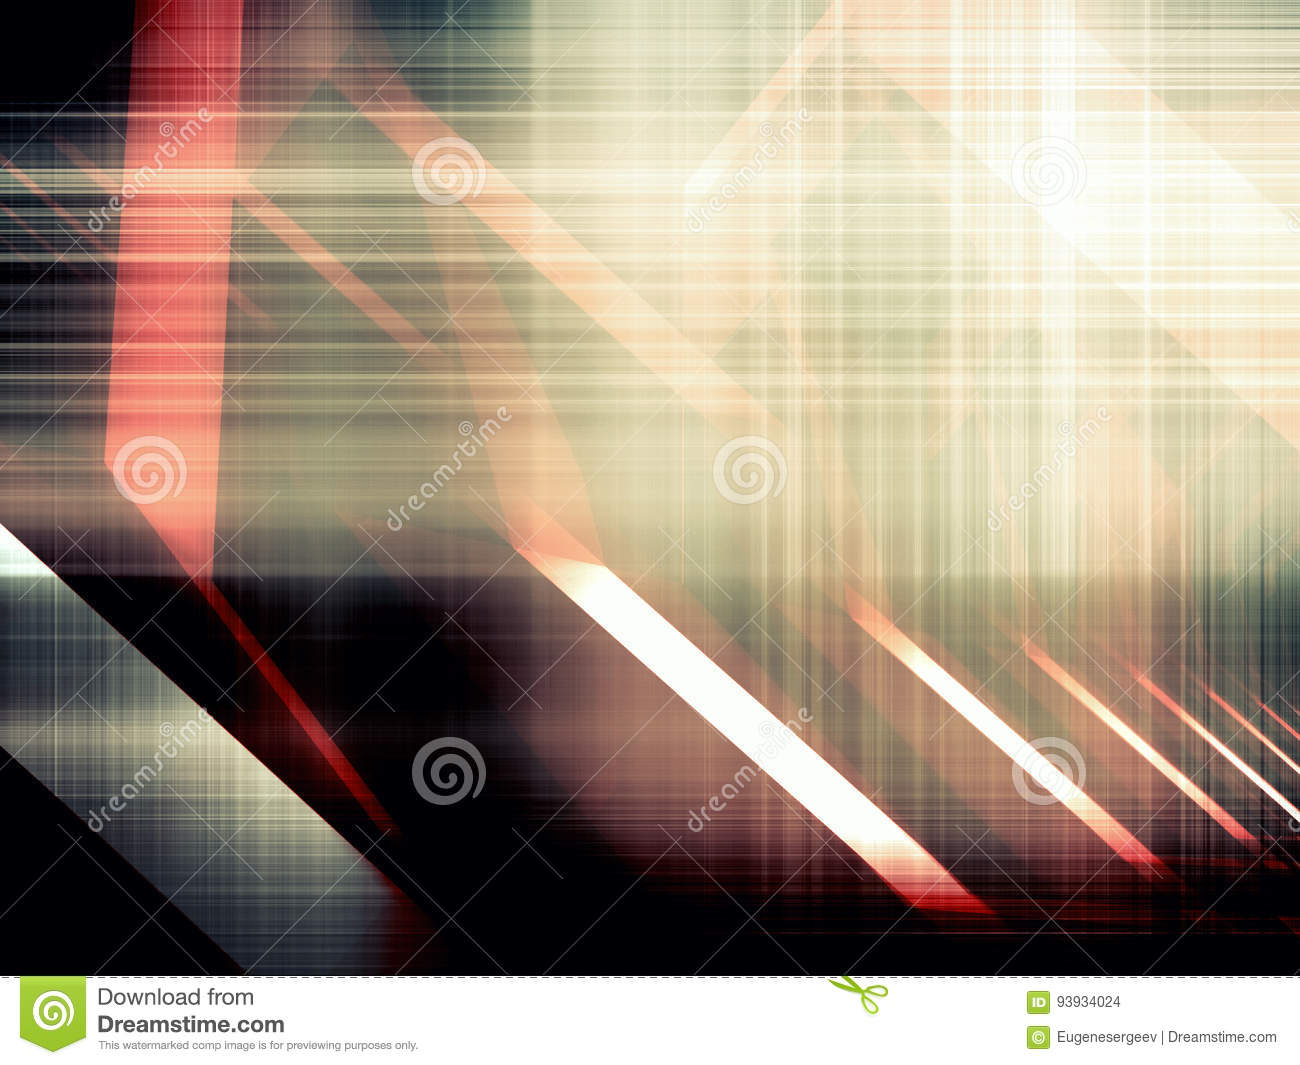 Abstract artistic digital background, high-tech